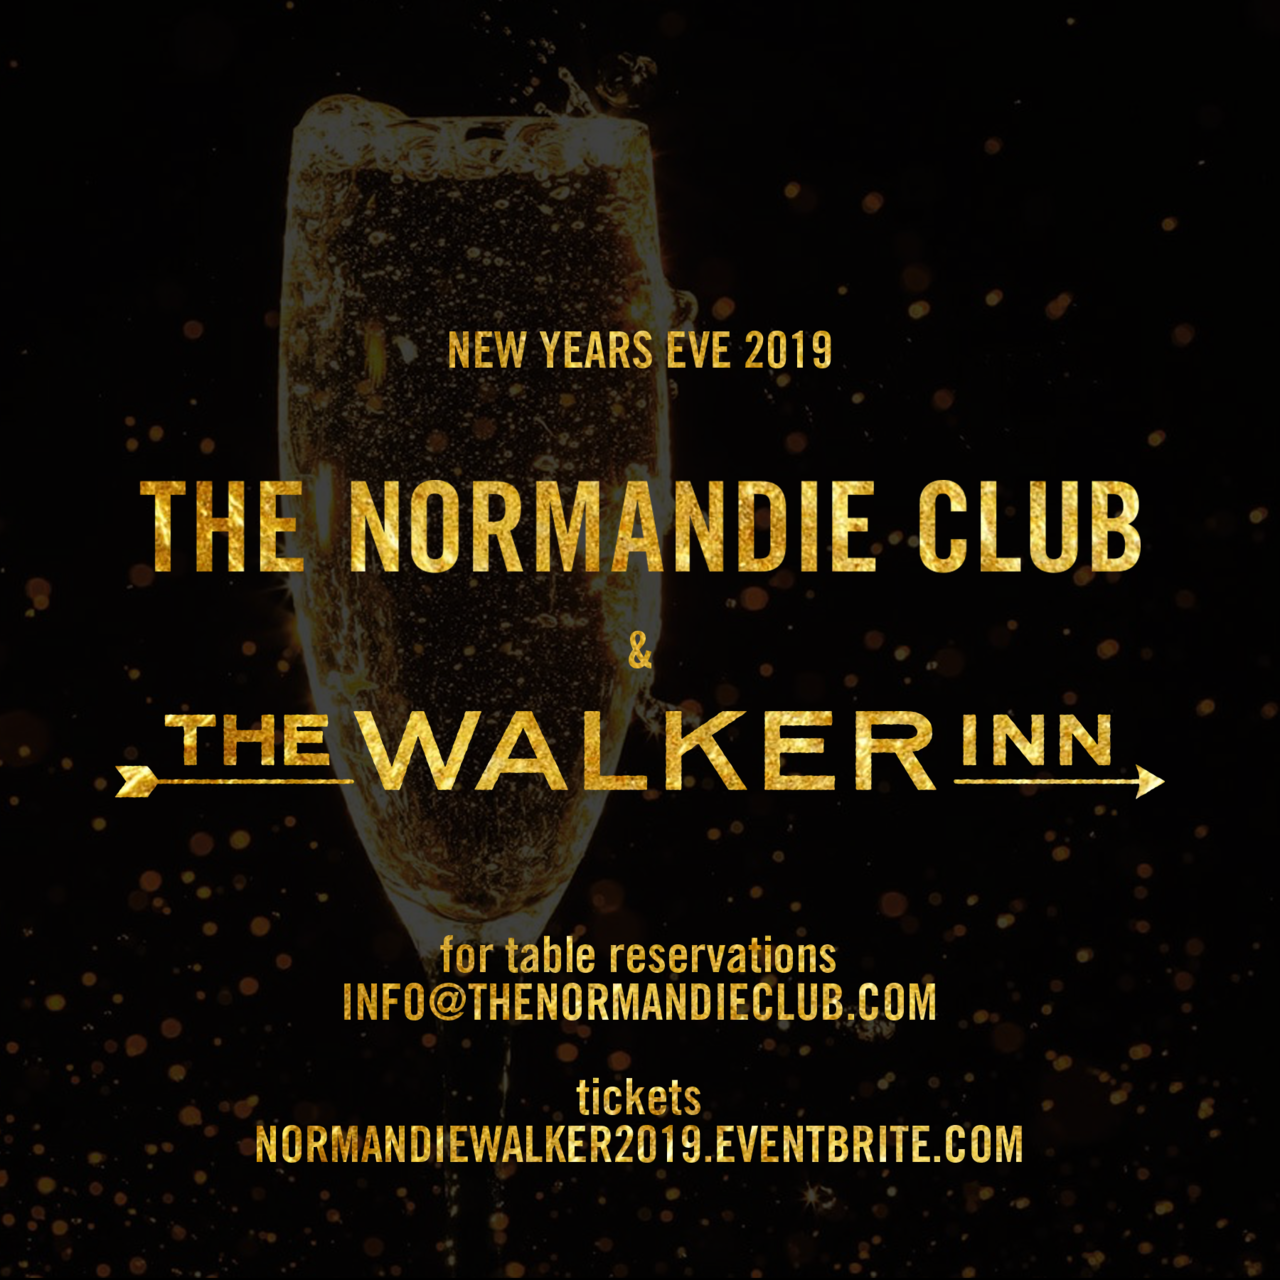 NYE 2019 at The Normandie Club & The Walker Inn